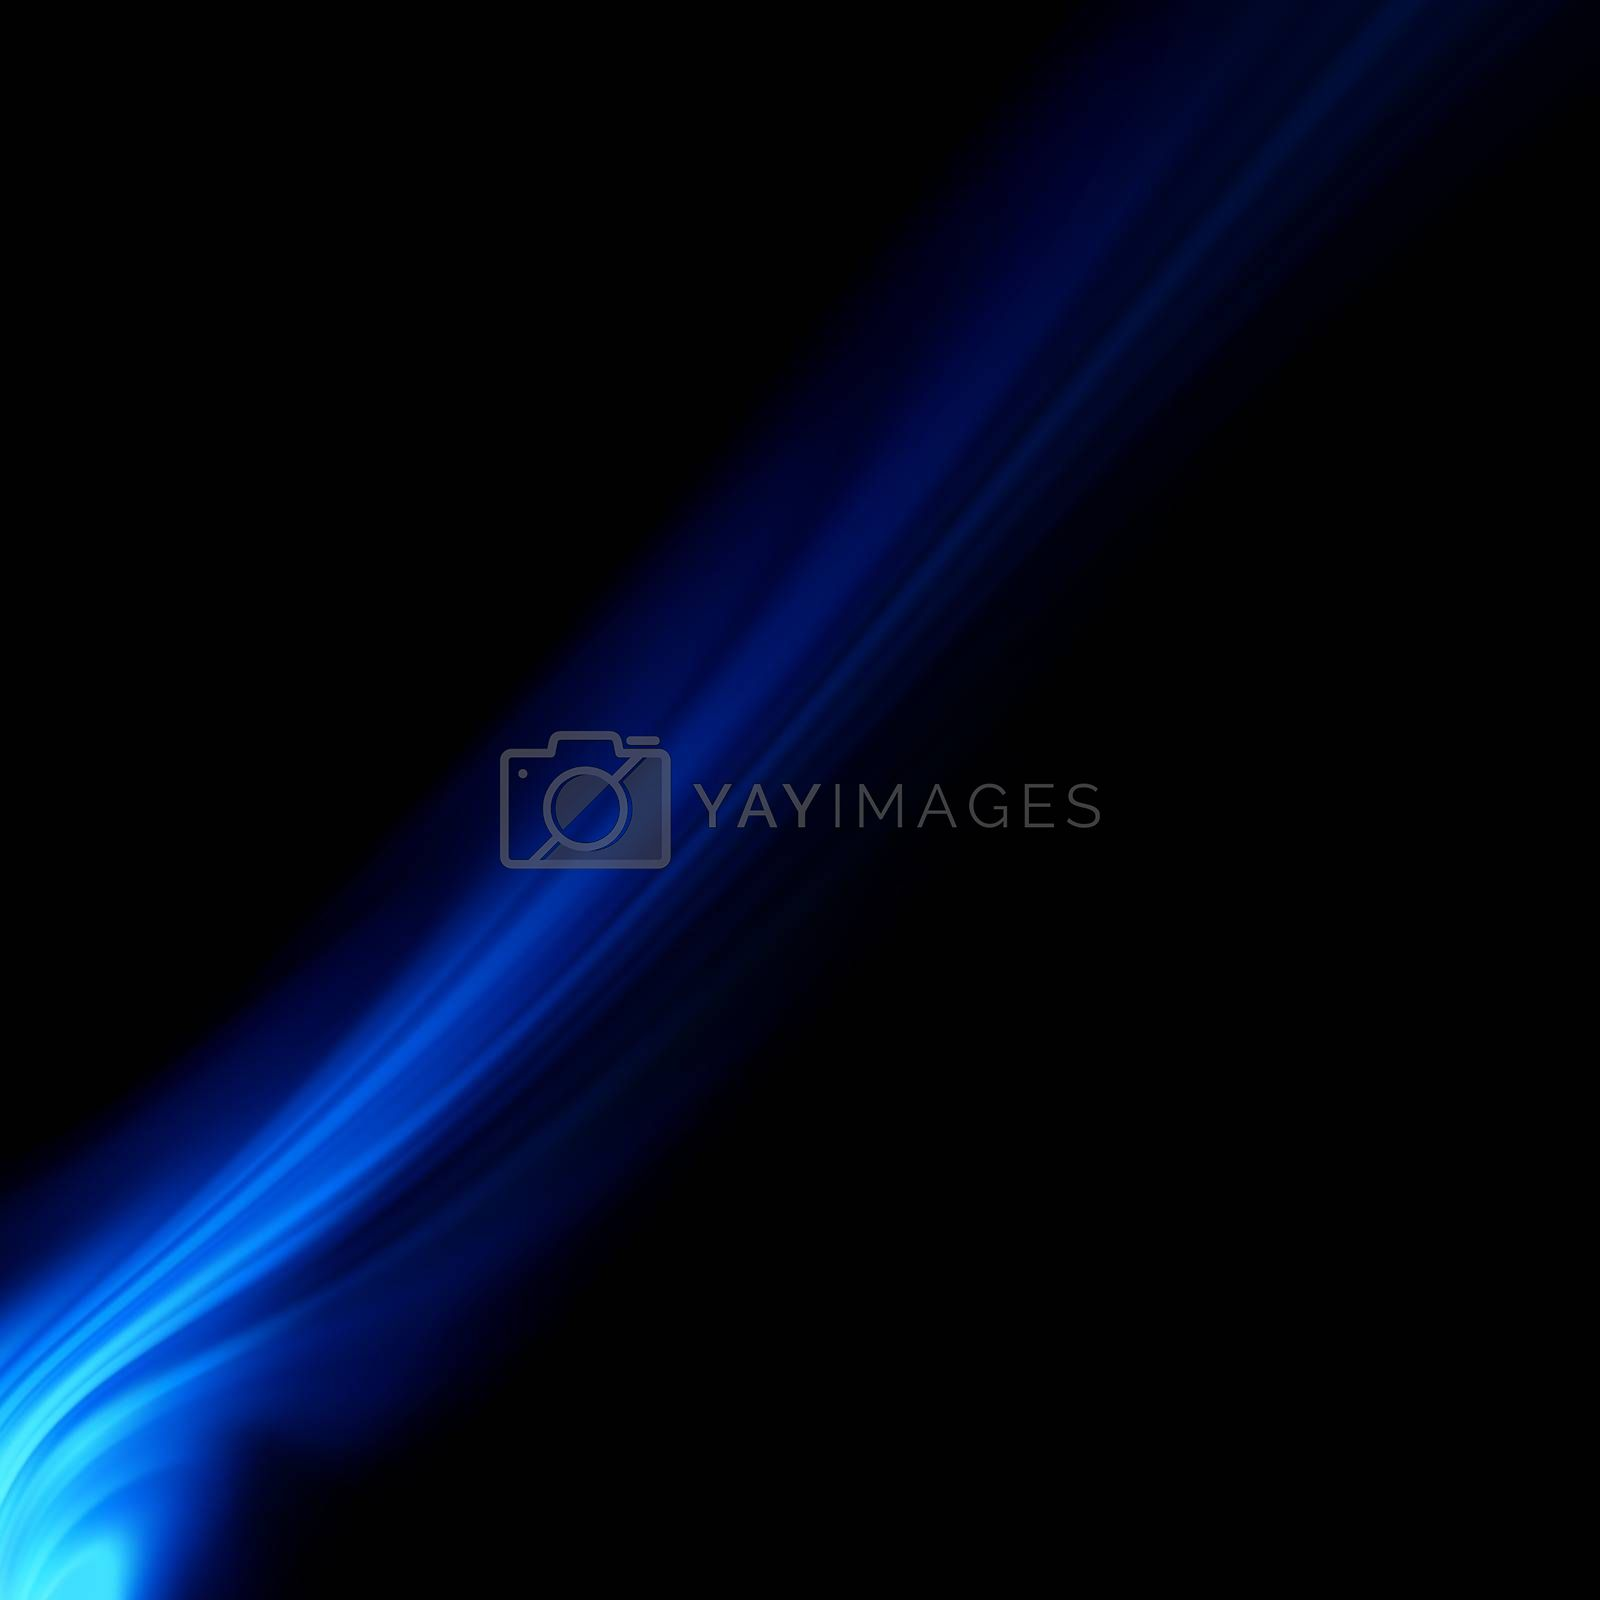 Blue smooth twist light lines background. EPS 8 vector file included